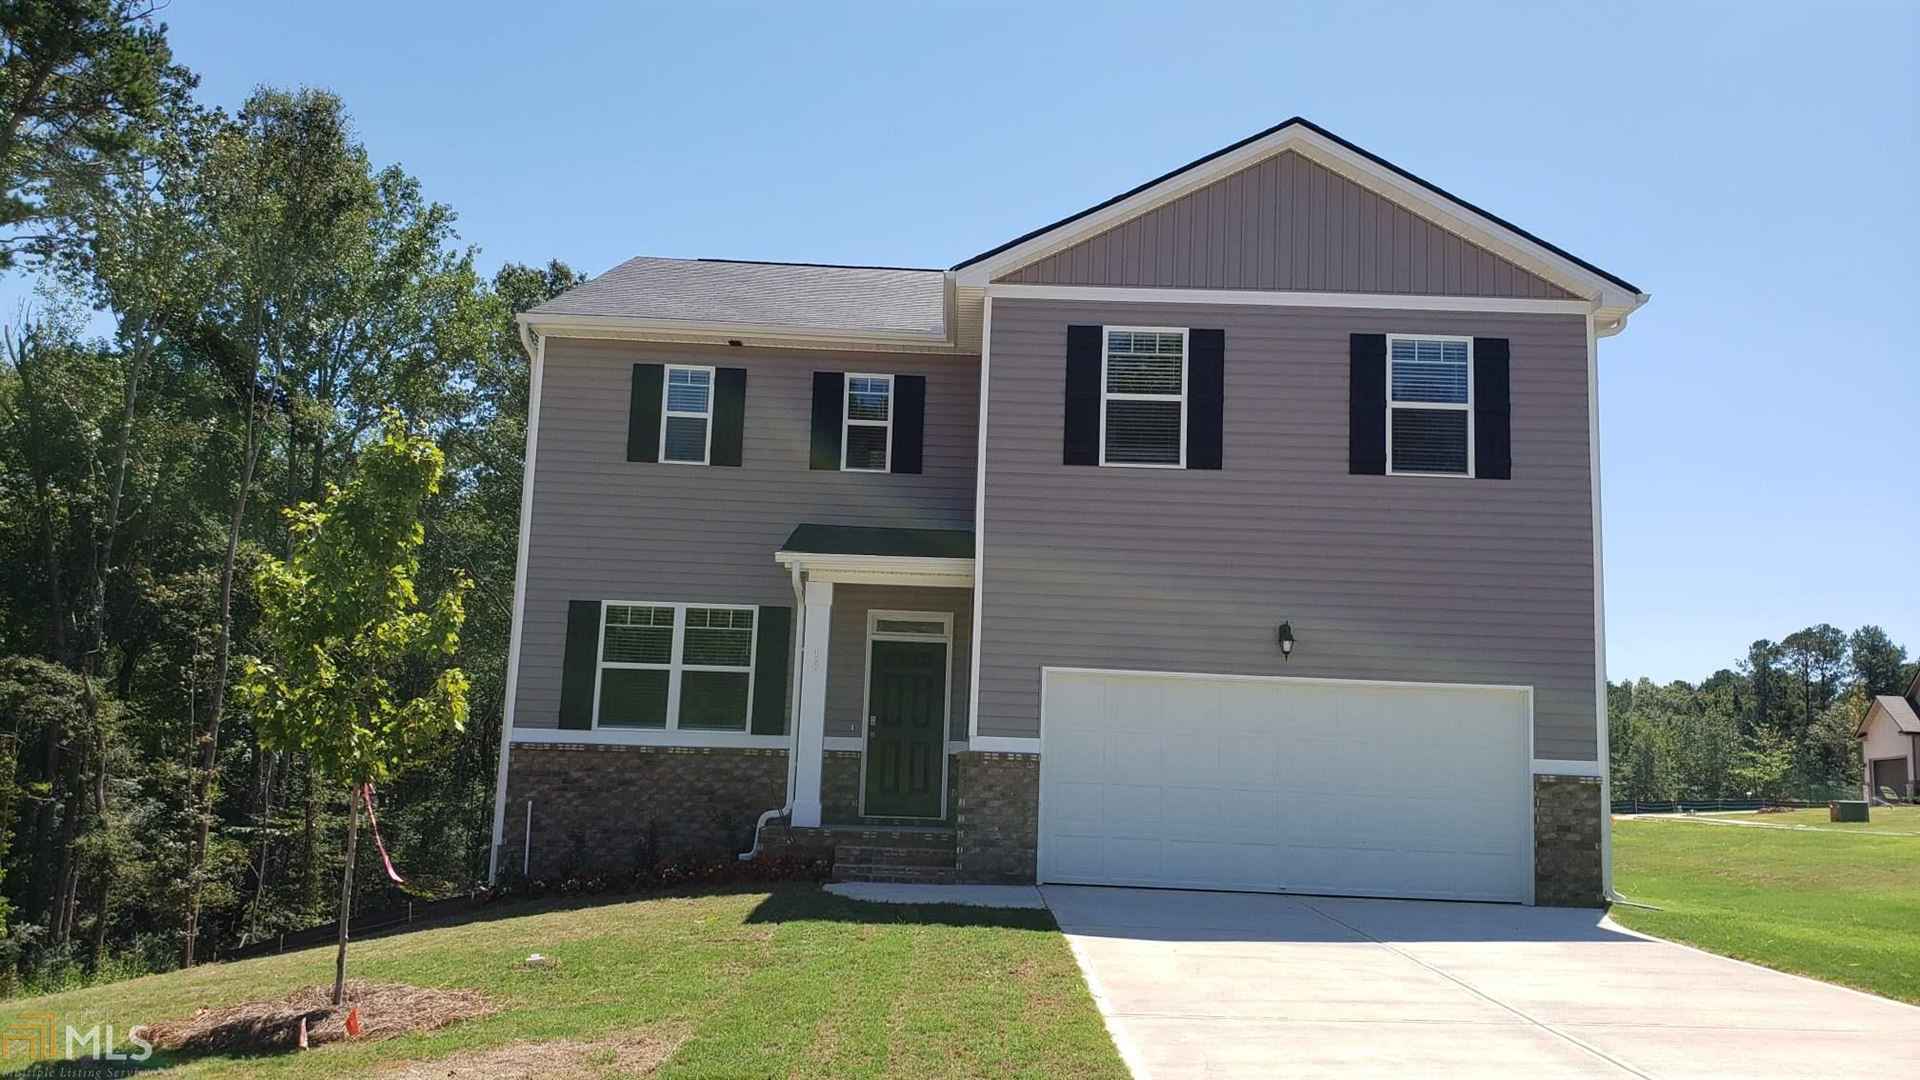 10 Lena Ct, Covington, GA 30014 - #: 8595993